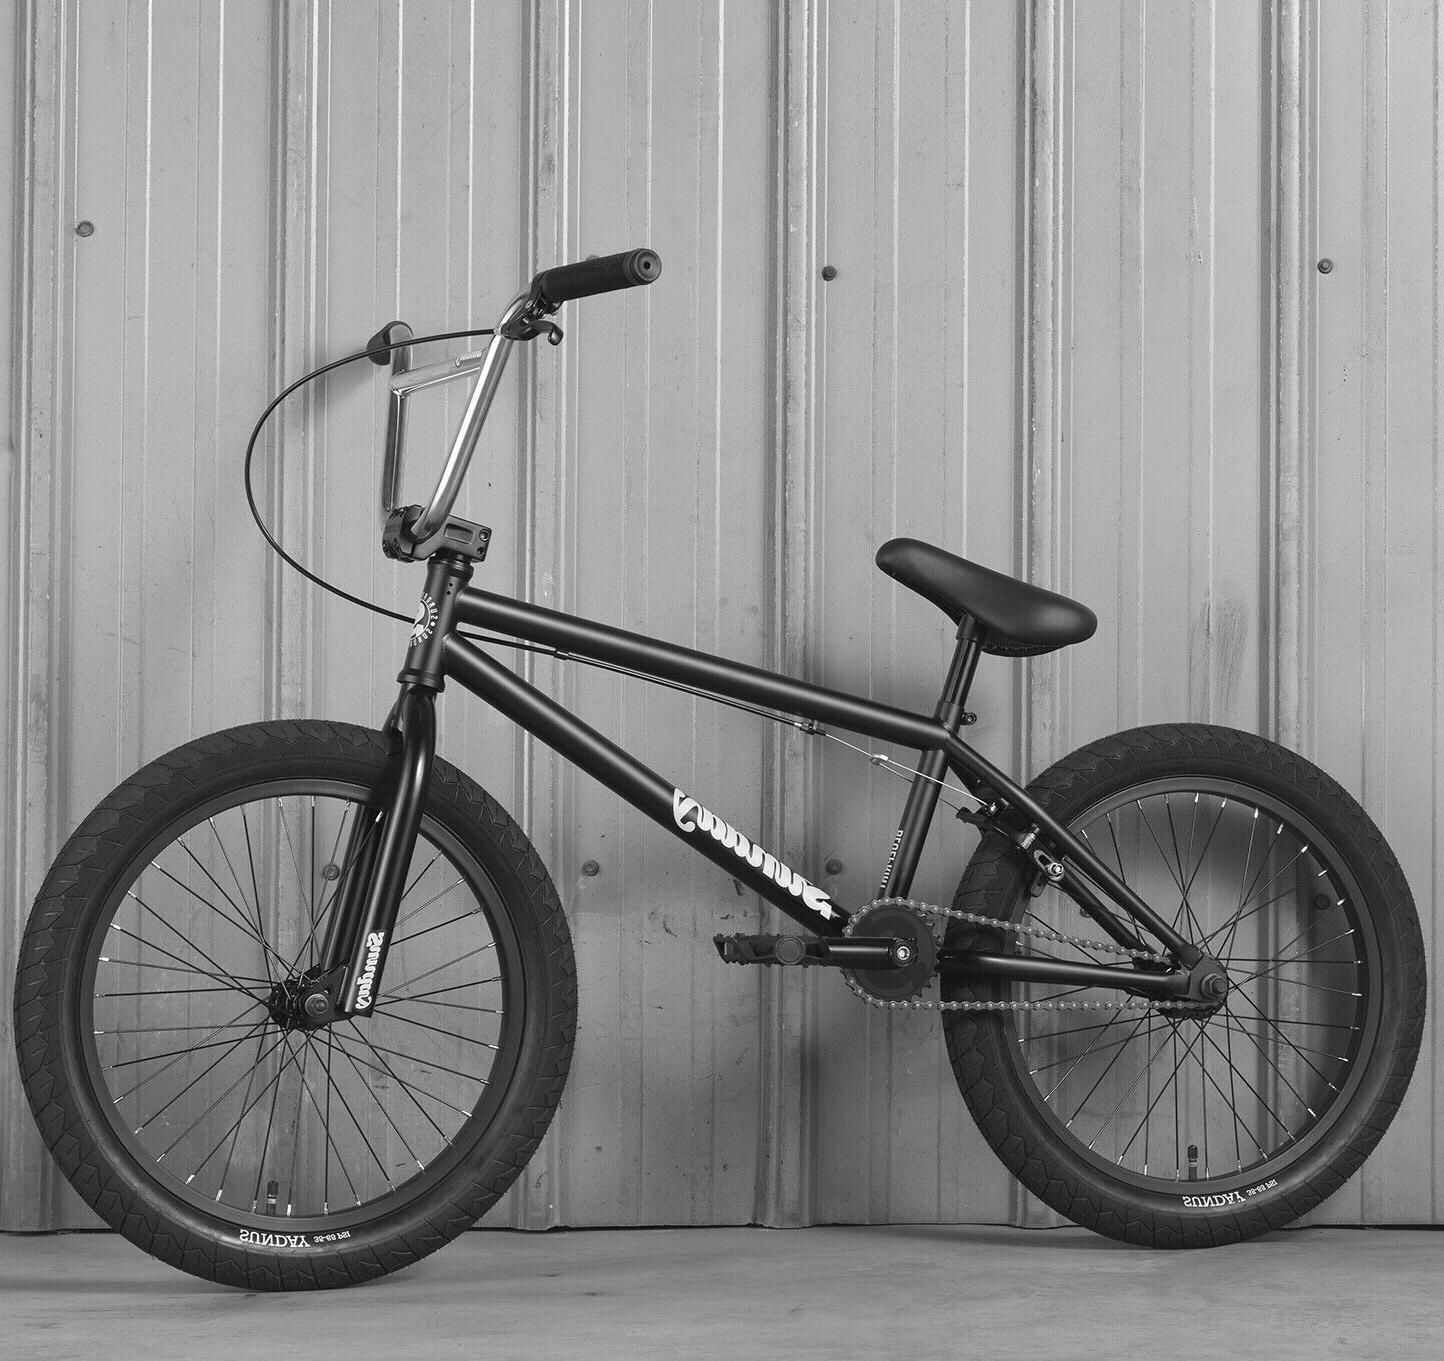 2020 bike bmx blueprint 20 black bicycle